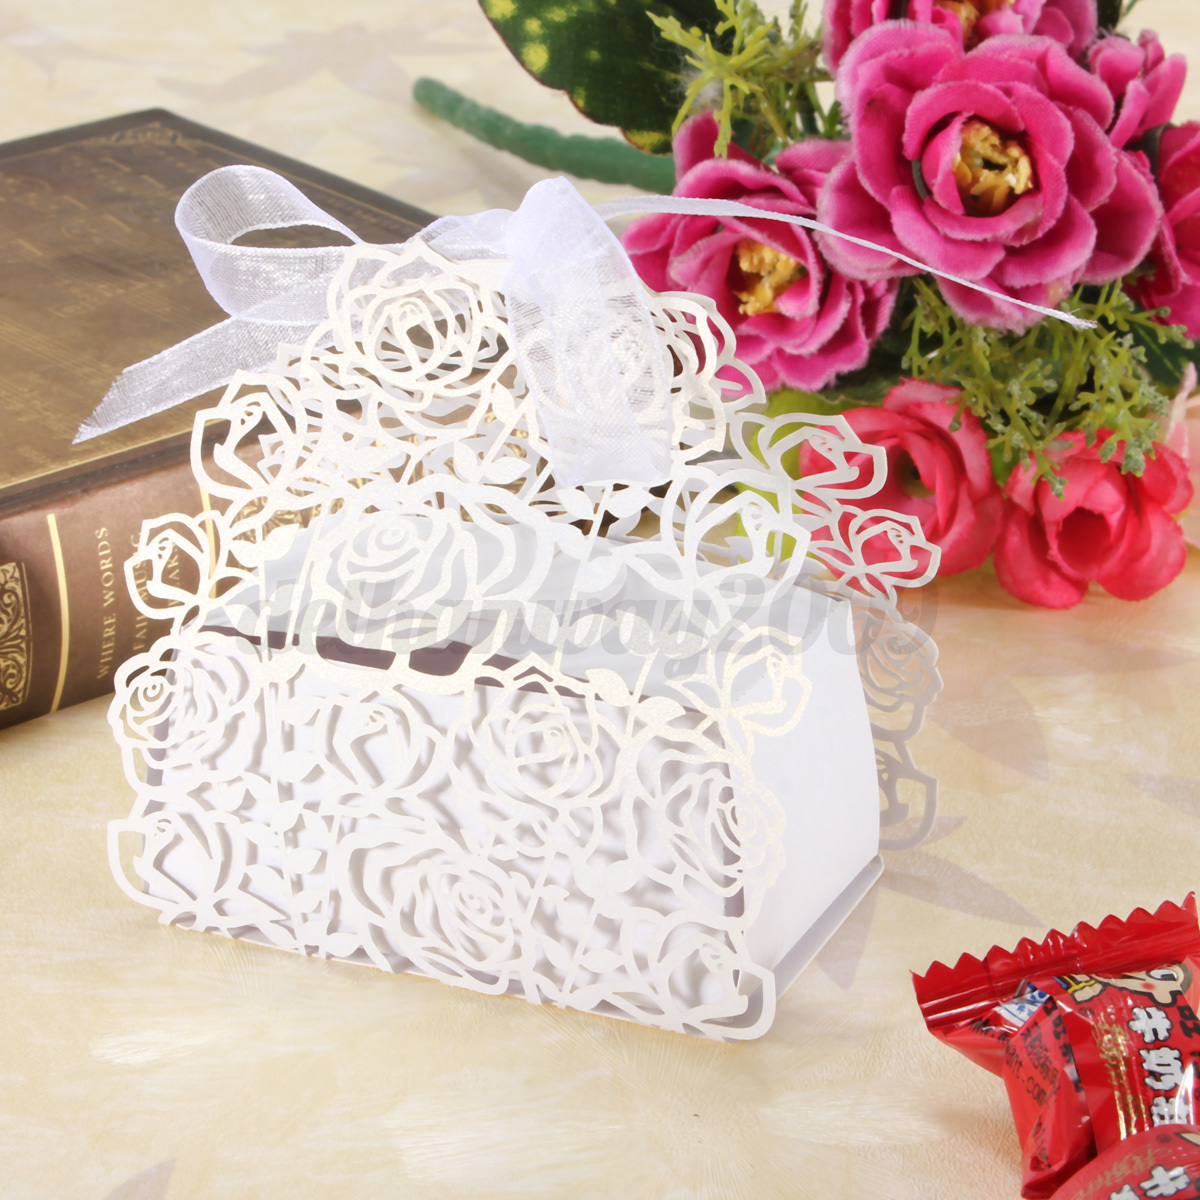 24 50 PCS Luxury Butterfly Flower Wedding Party Sweet Candy Cake Favors Gift Box